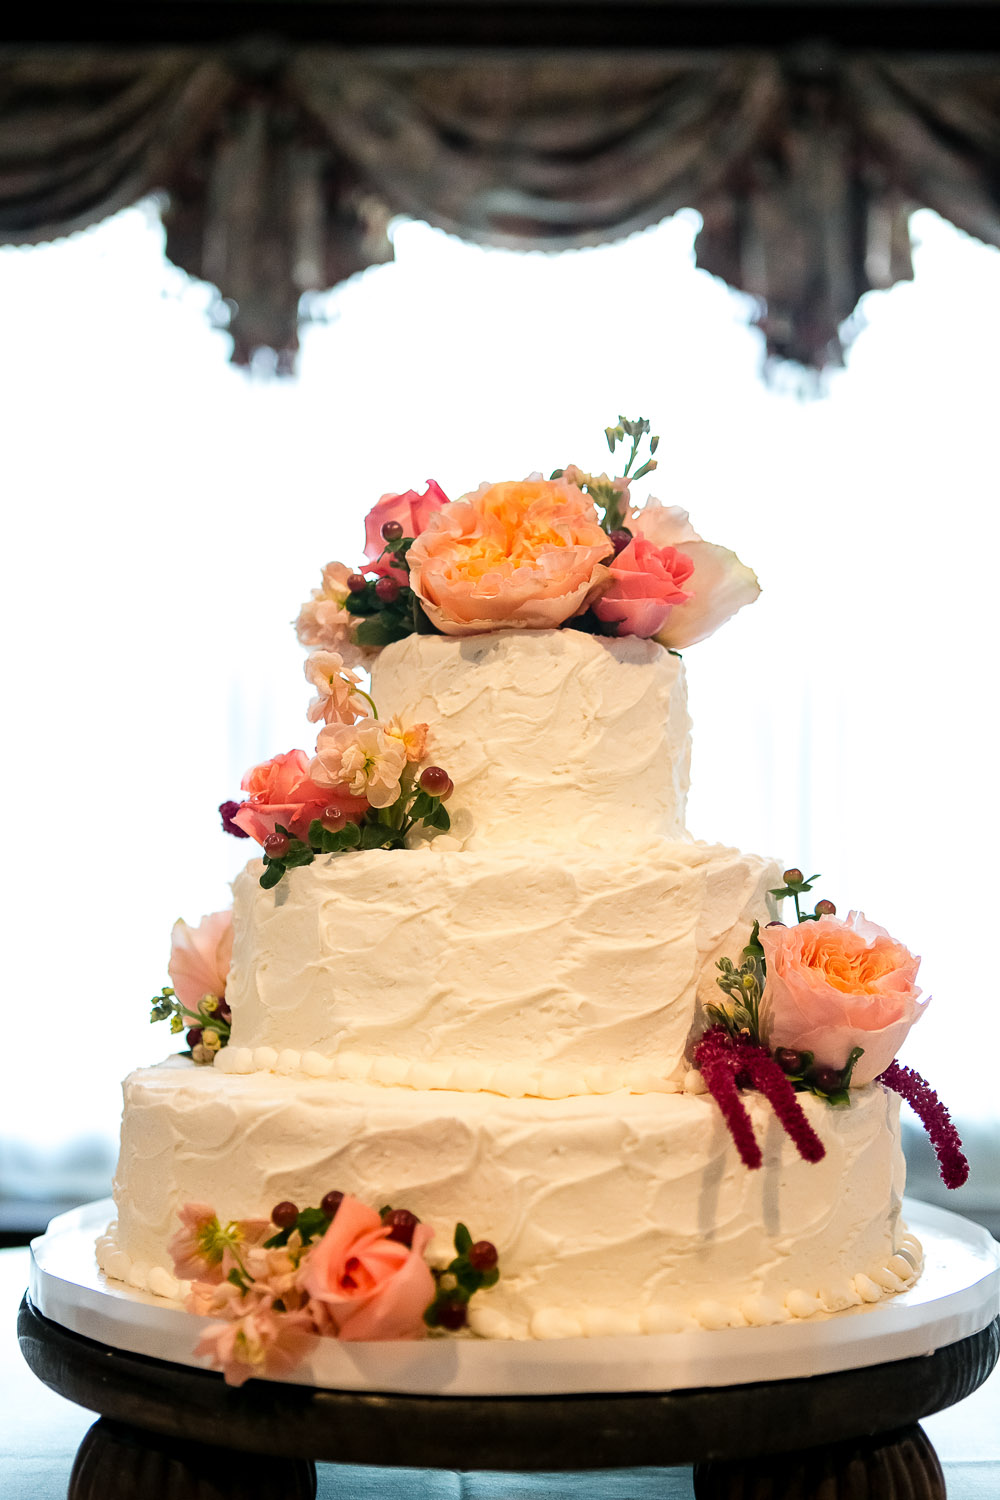 Cakes, Real Weddings, Wedding Style, pink, Floral Wedding Cakes, Round Wedding Cakes, Wedding Cakes, Fall Weddings, Classic Real Weddings, Fall Real Weddings, Garden Real Weddings, Classic Weddings, Garden Weddings, Roses, Peach, Tennessee, Romantic Real Weddings, Romantic Weddings, tennessee real weddings, tennessee weddings